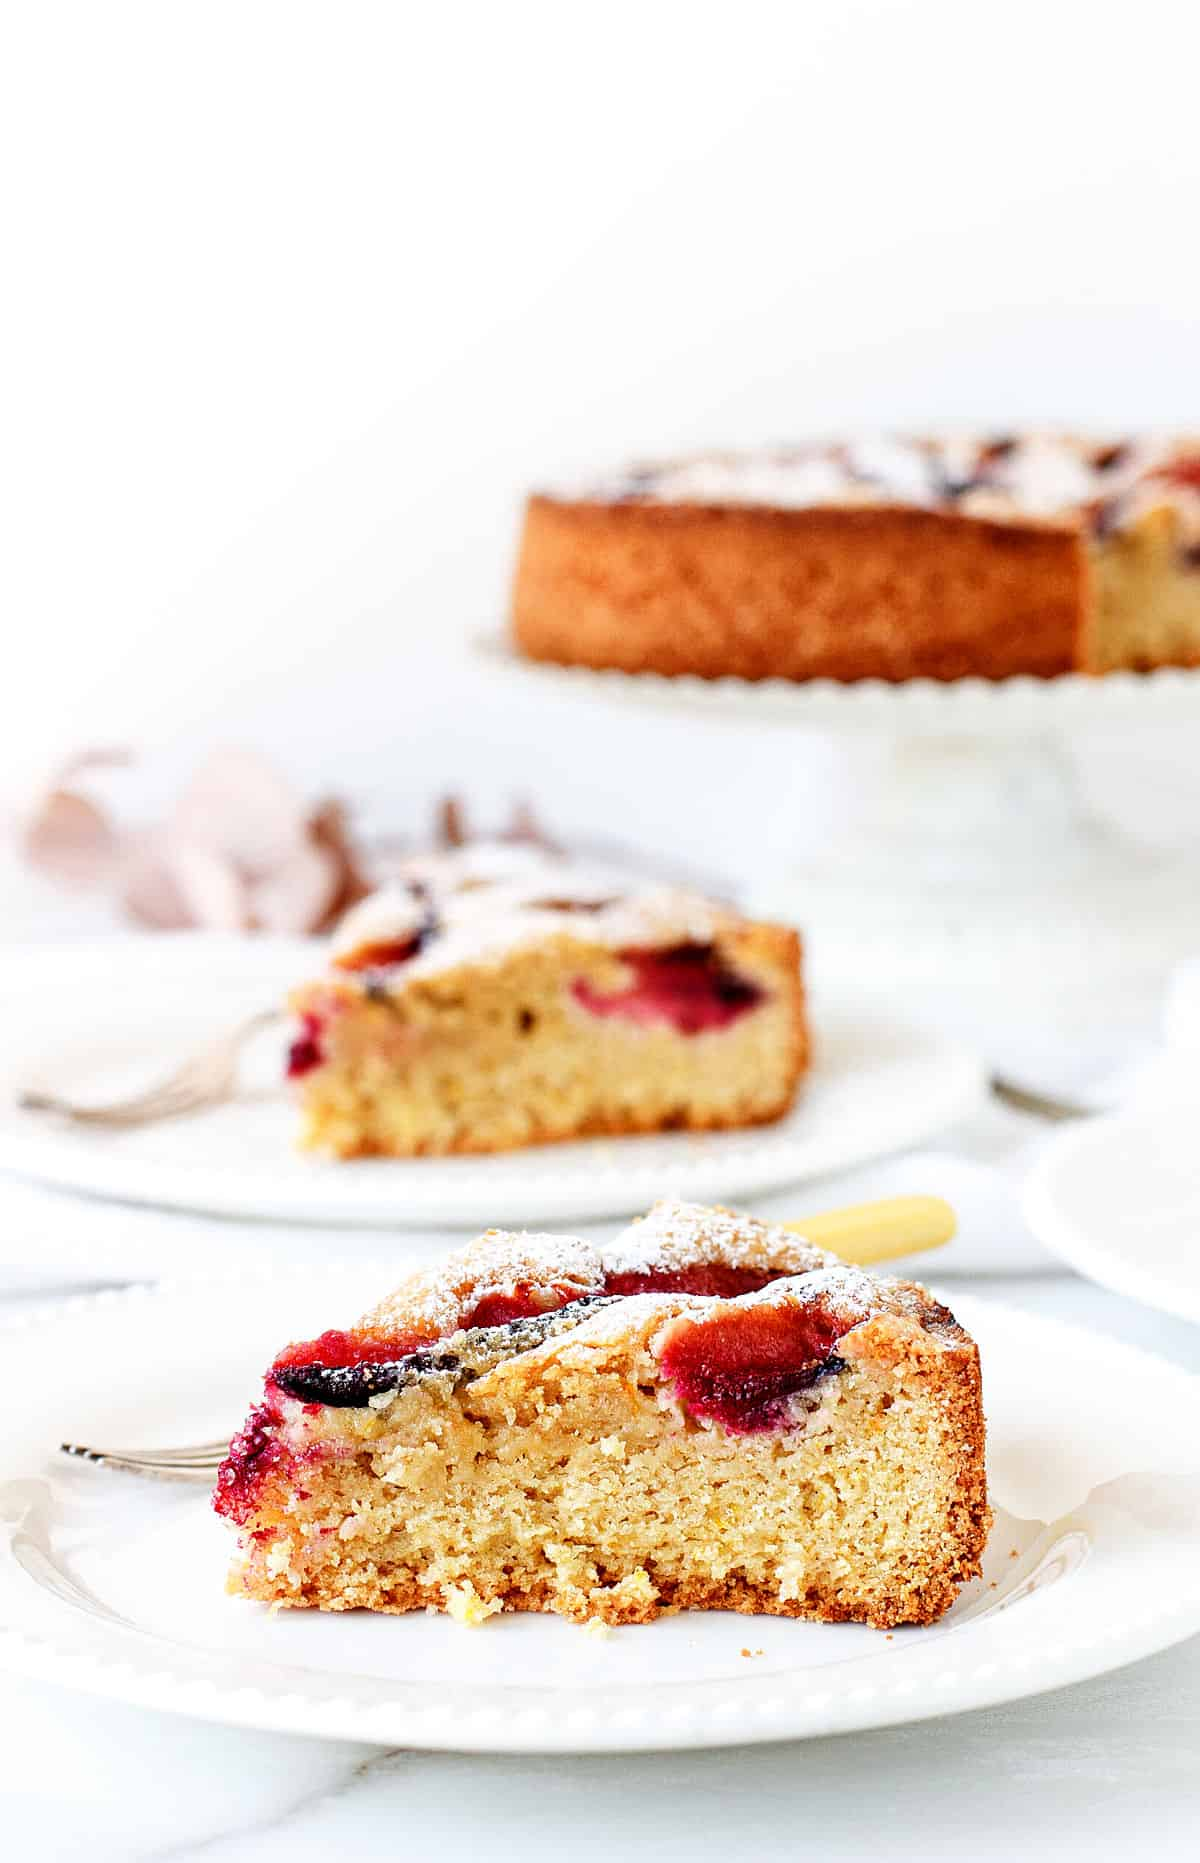 Slices of plum cake on white plates, cake on white cake stand, white background